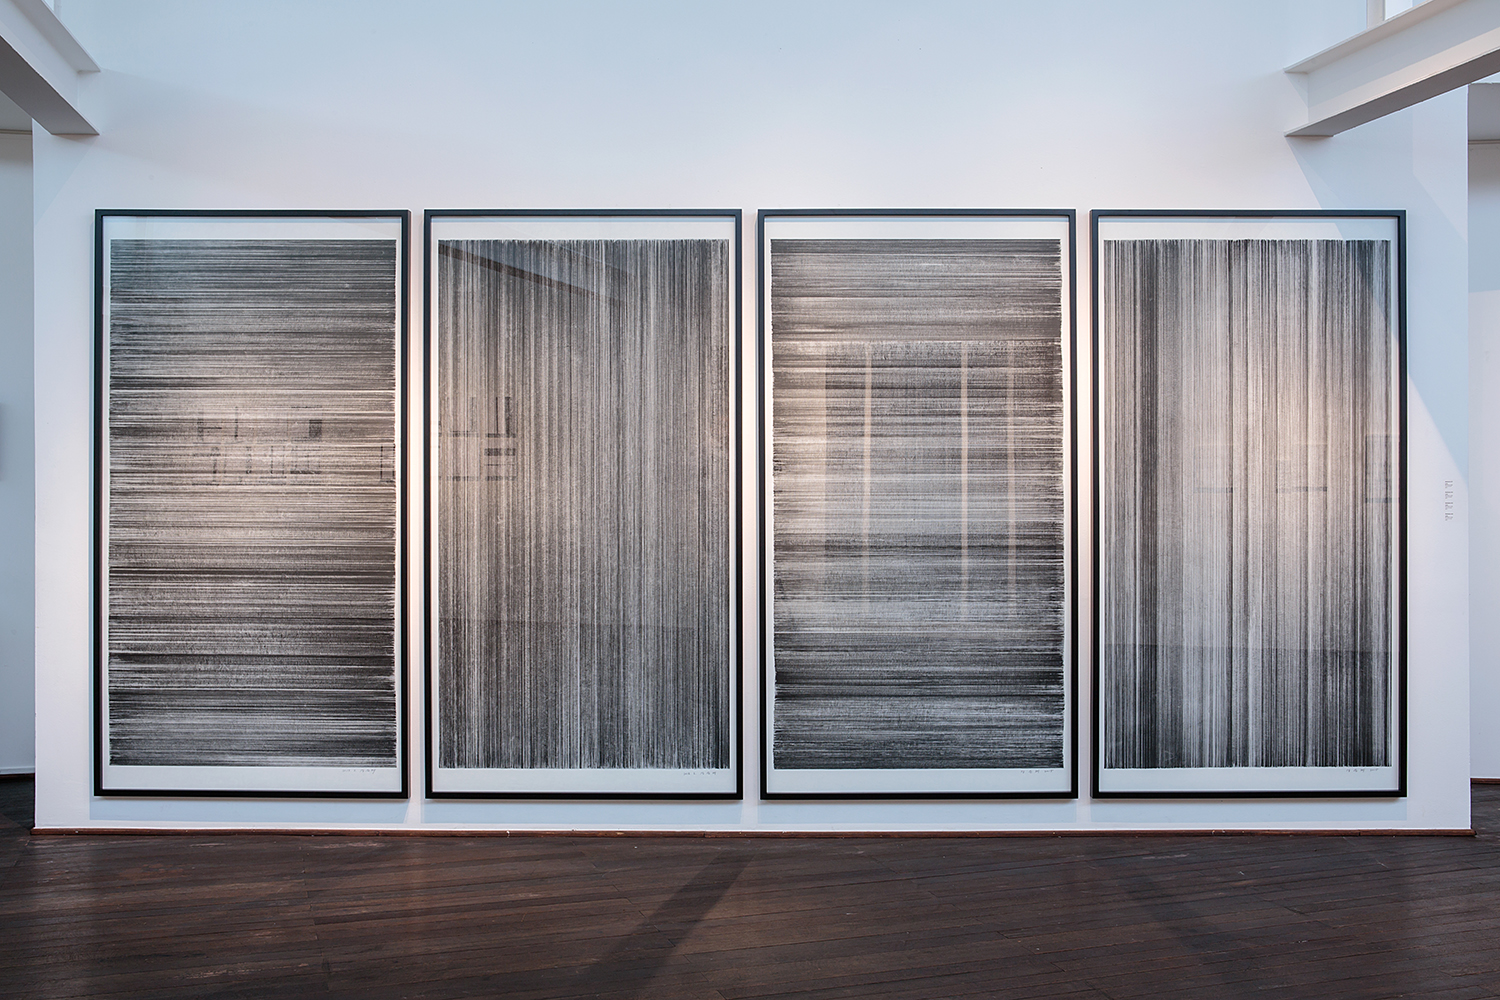 Meditation No.01, 02, 03, 04    Sumi-ink Drawing on Rice paper  113.5x213 (cm) each  2015